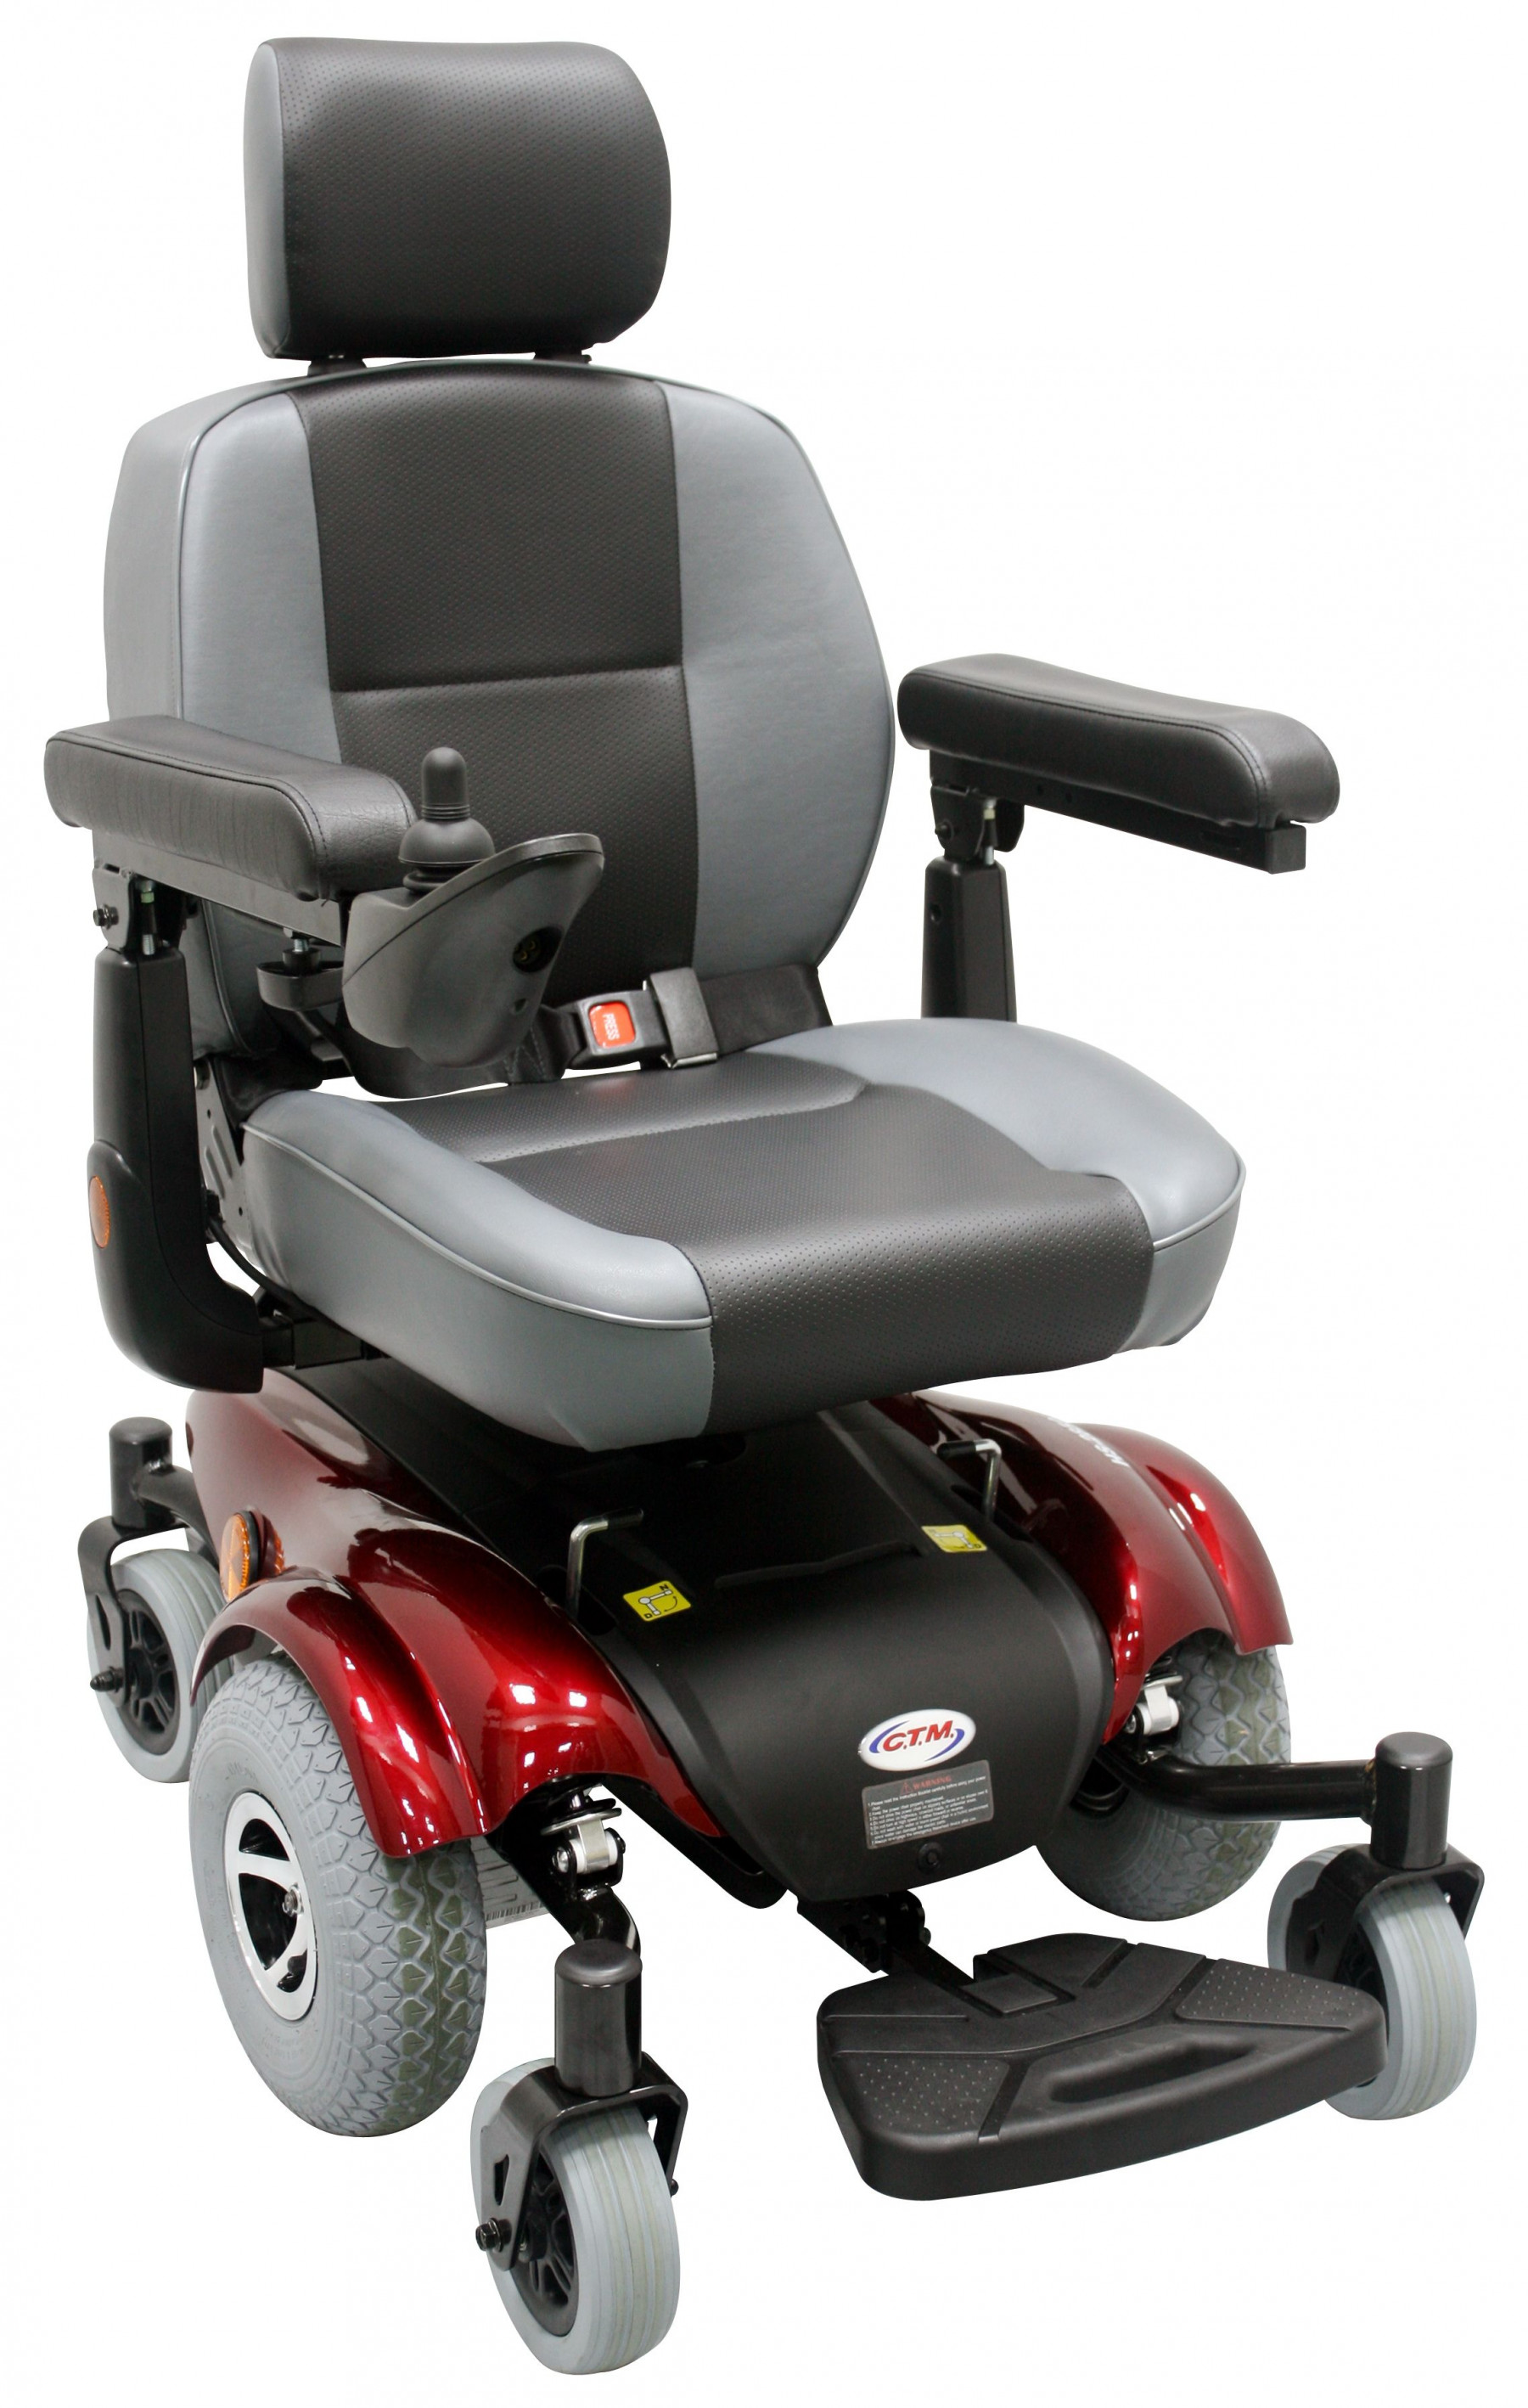 Power Chairs And Scooters Ctm Hs 2850 Power Wheelchair For Sale Lowest Prices Tax